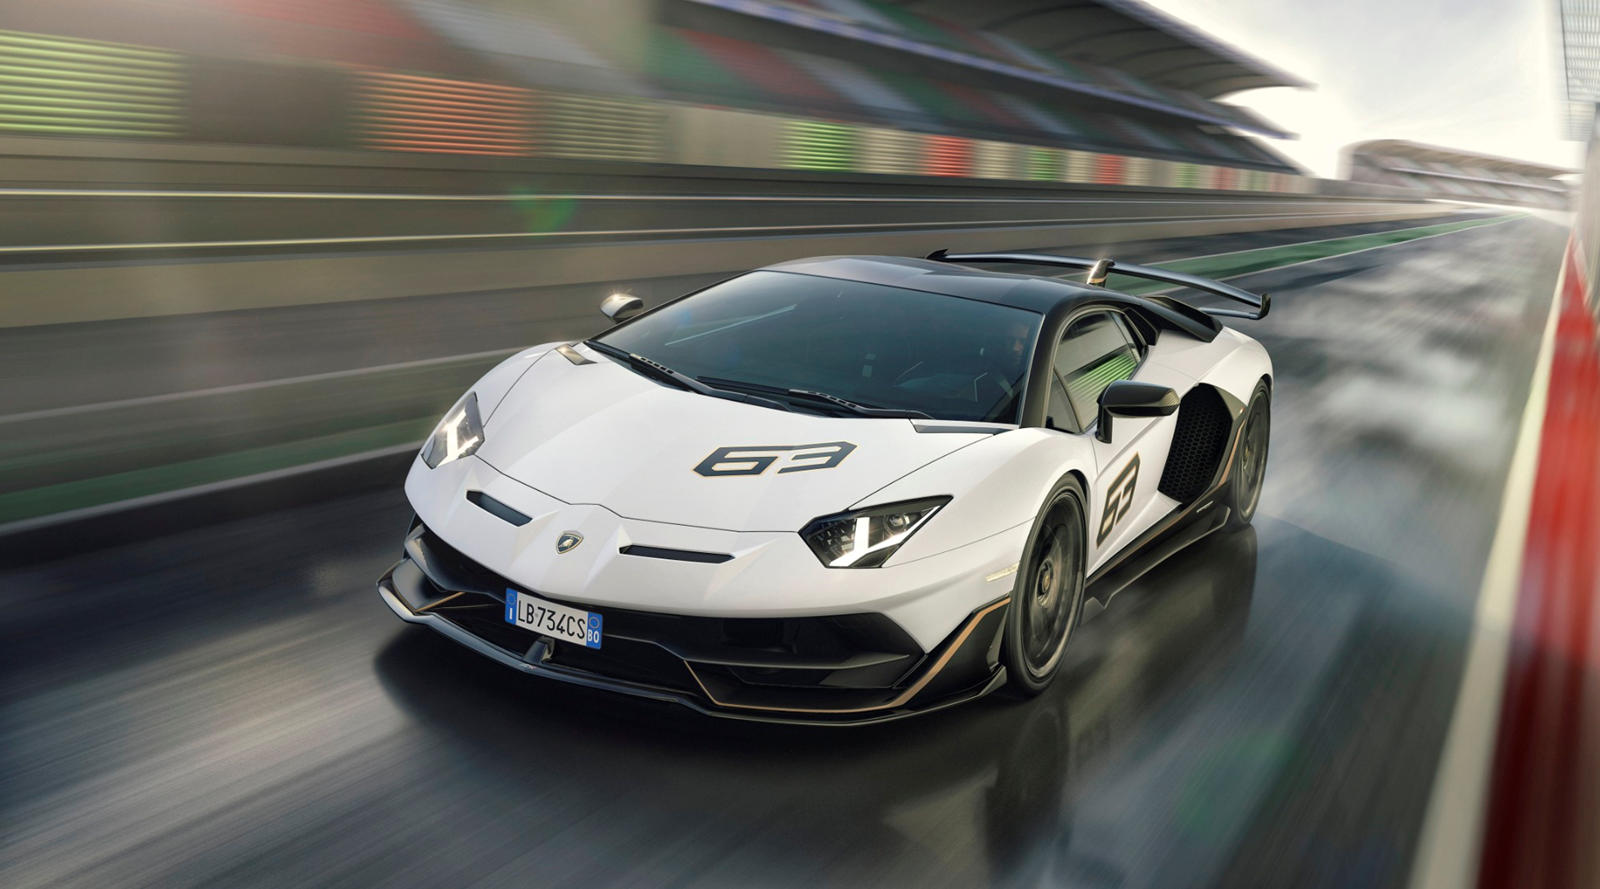 2019 Lamborghini Aventador Svj Review Review Trims Specs And Price